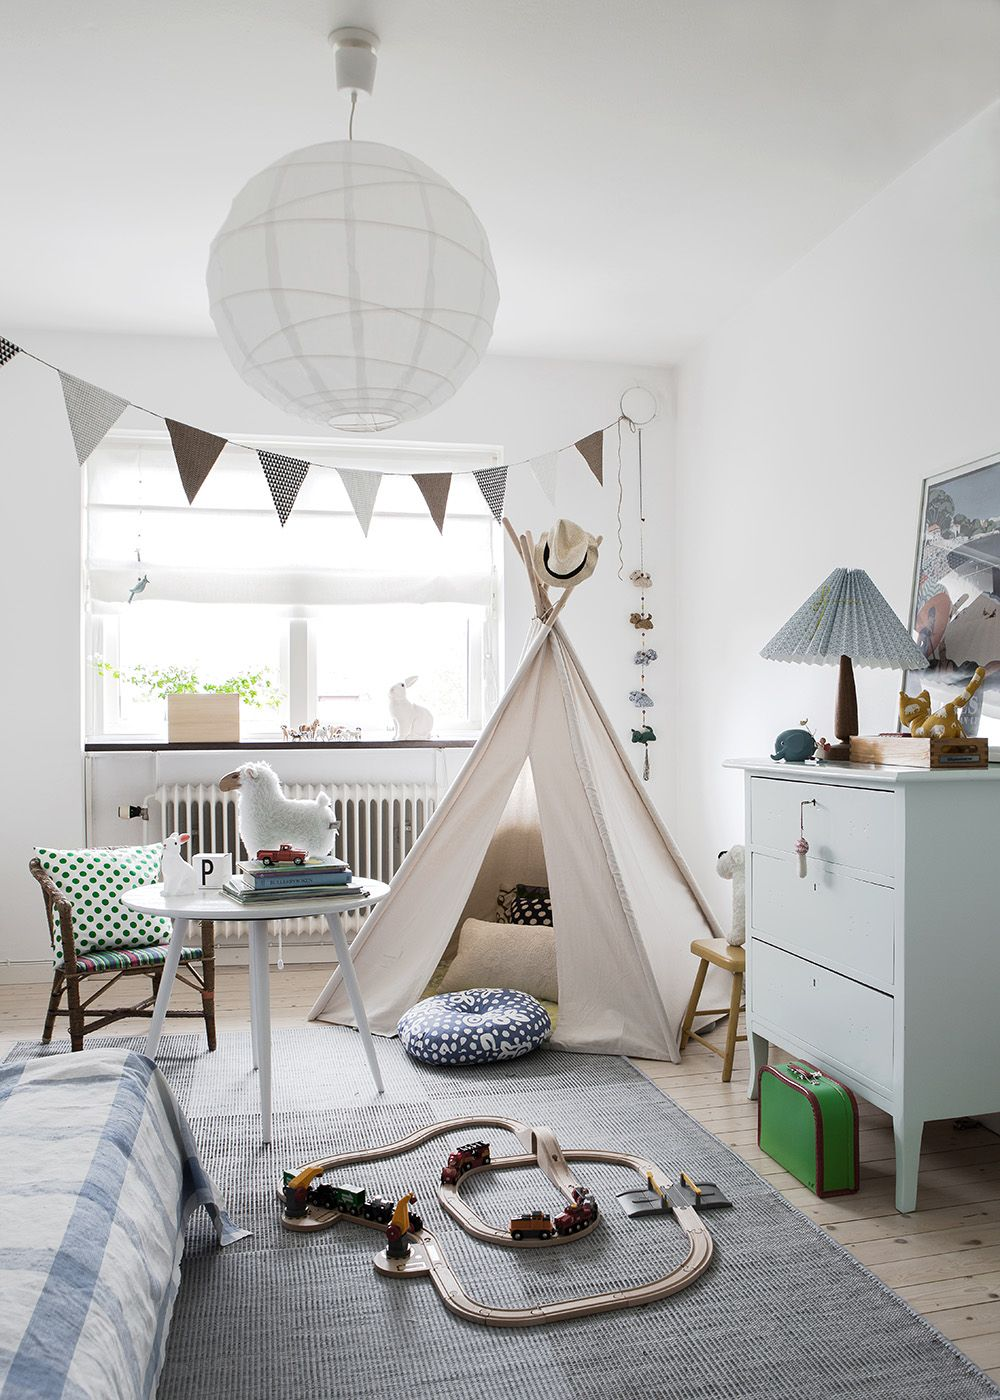 Attractive Kids Room With A Teepee